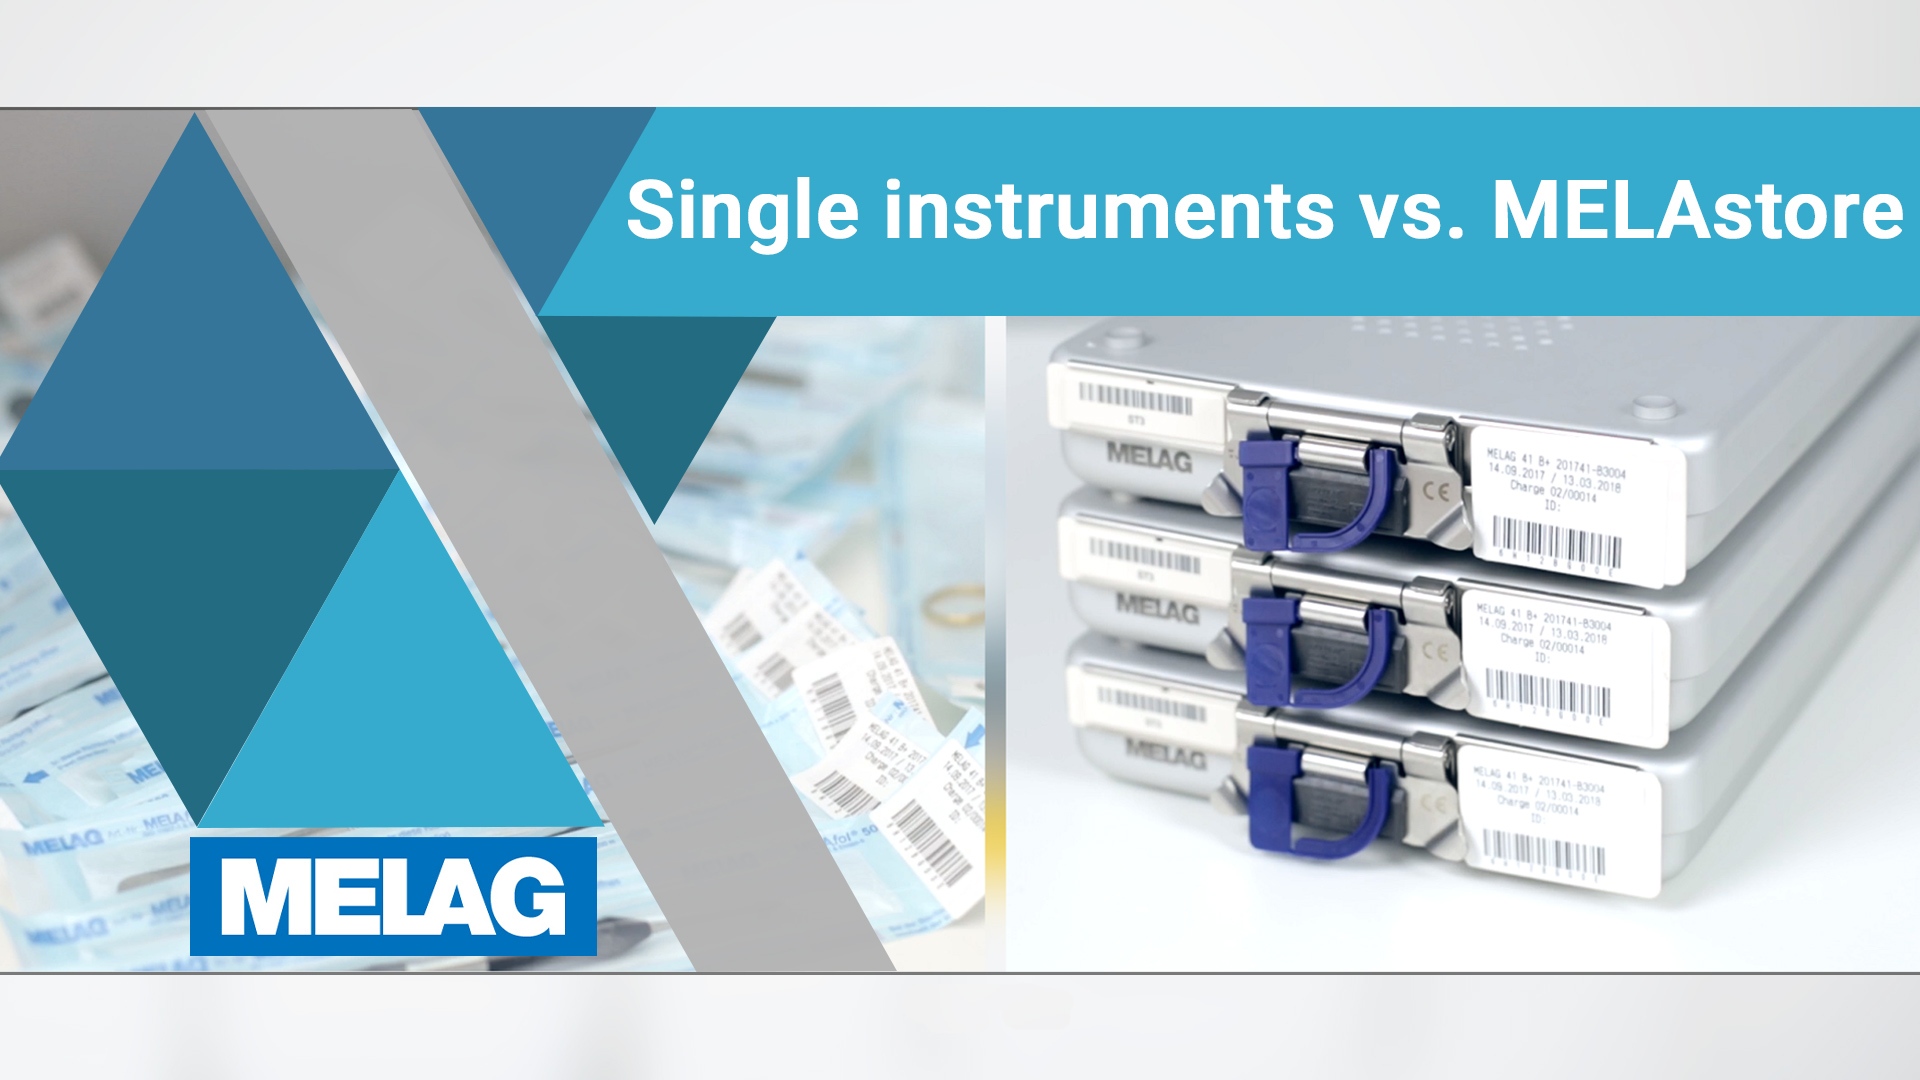 single instruments vs. instruments sets in wash-trays